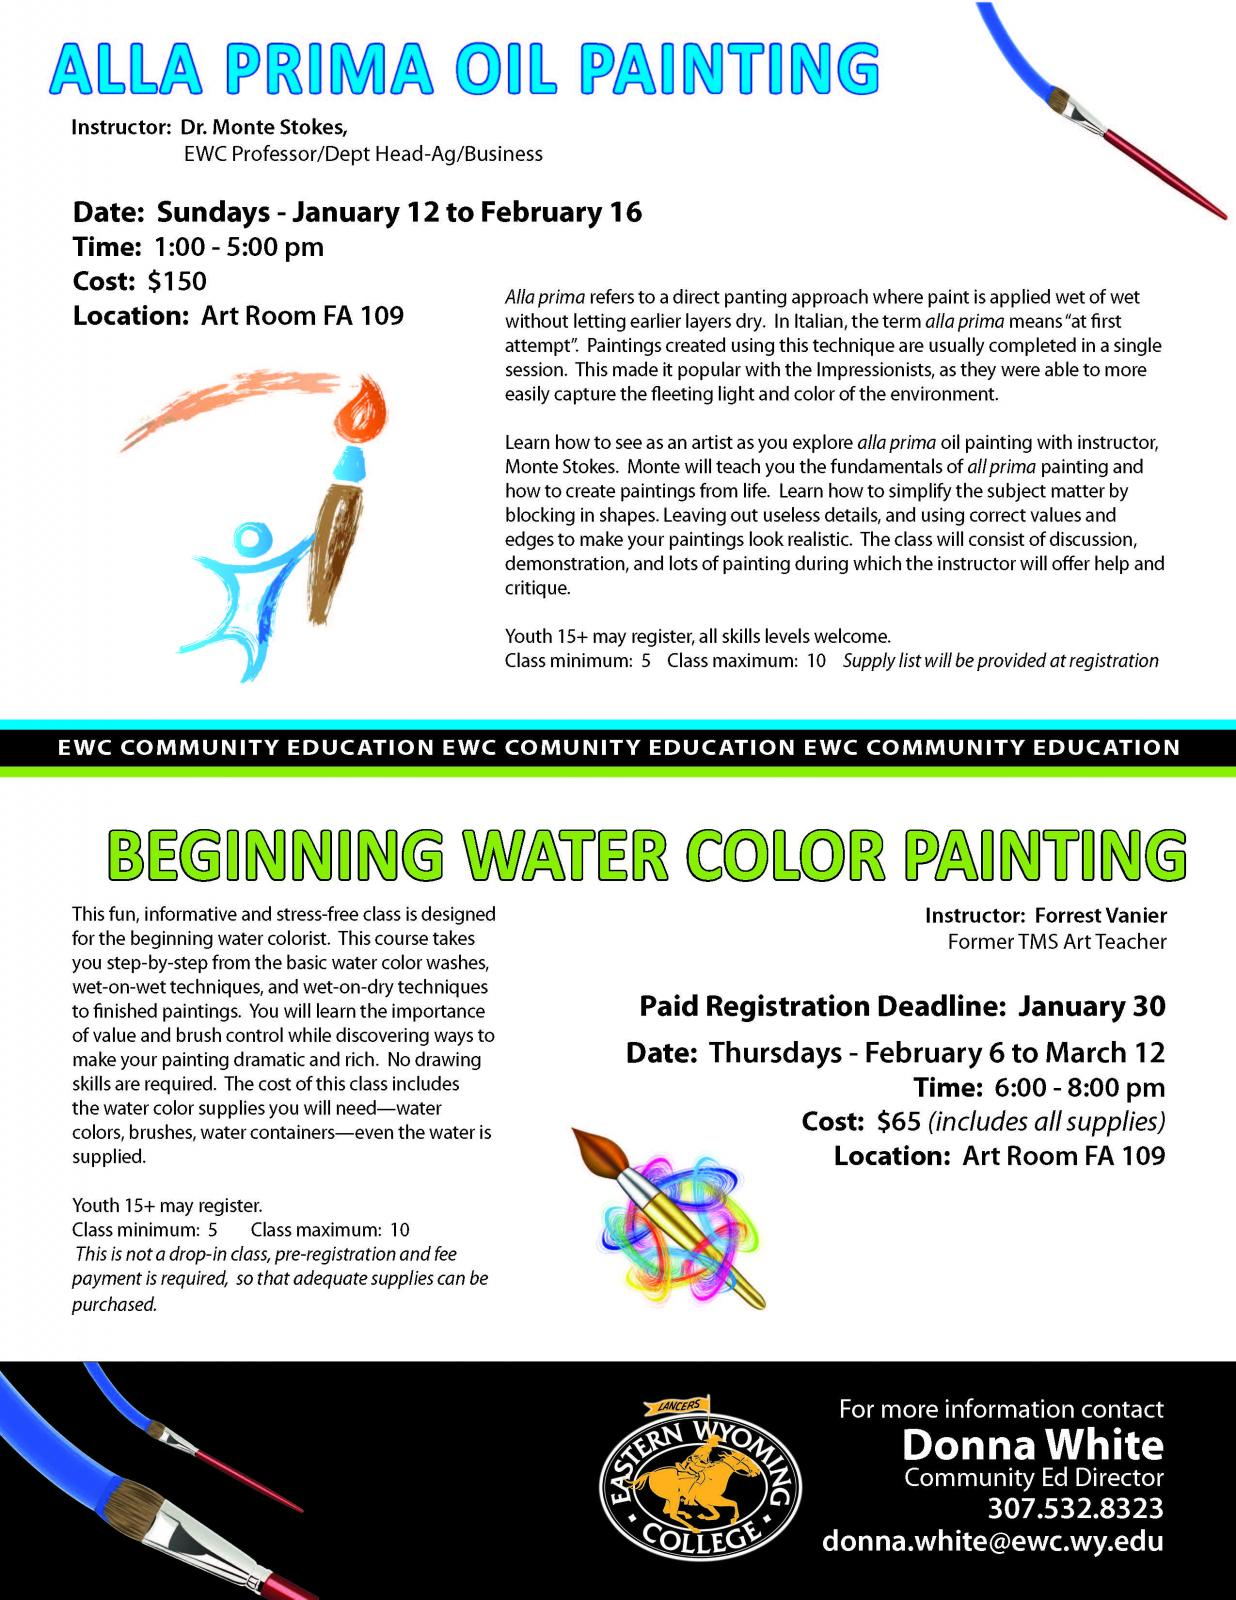 Beginning Water Color Painting Class Photo